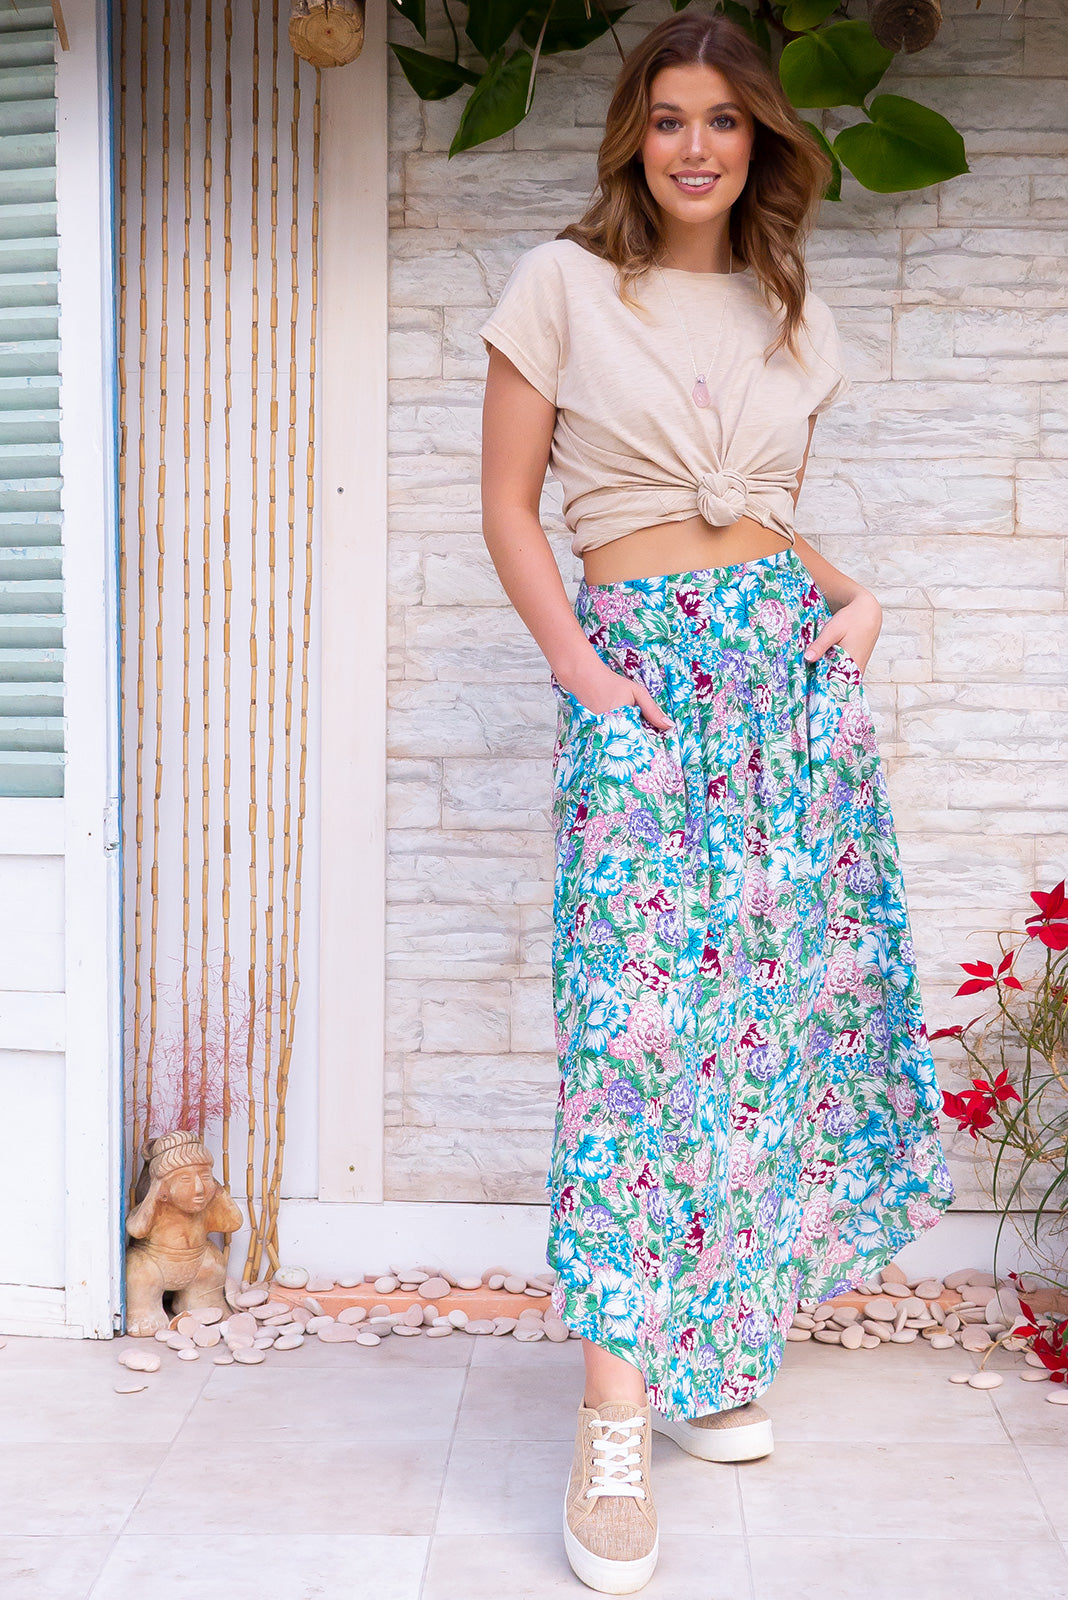 Sails Summer Vine Maxi Skirt features a stunning, fresh colourful floral and grape print on 100% viscose fabric. Soft flowing maxi length with side pockets and an elastic back waist band.